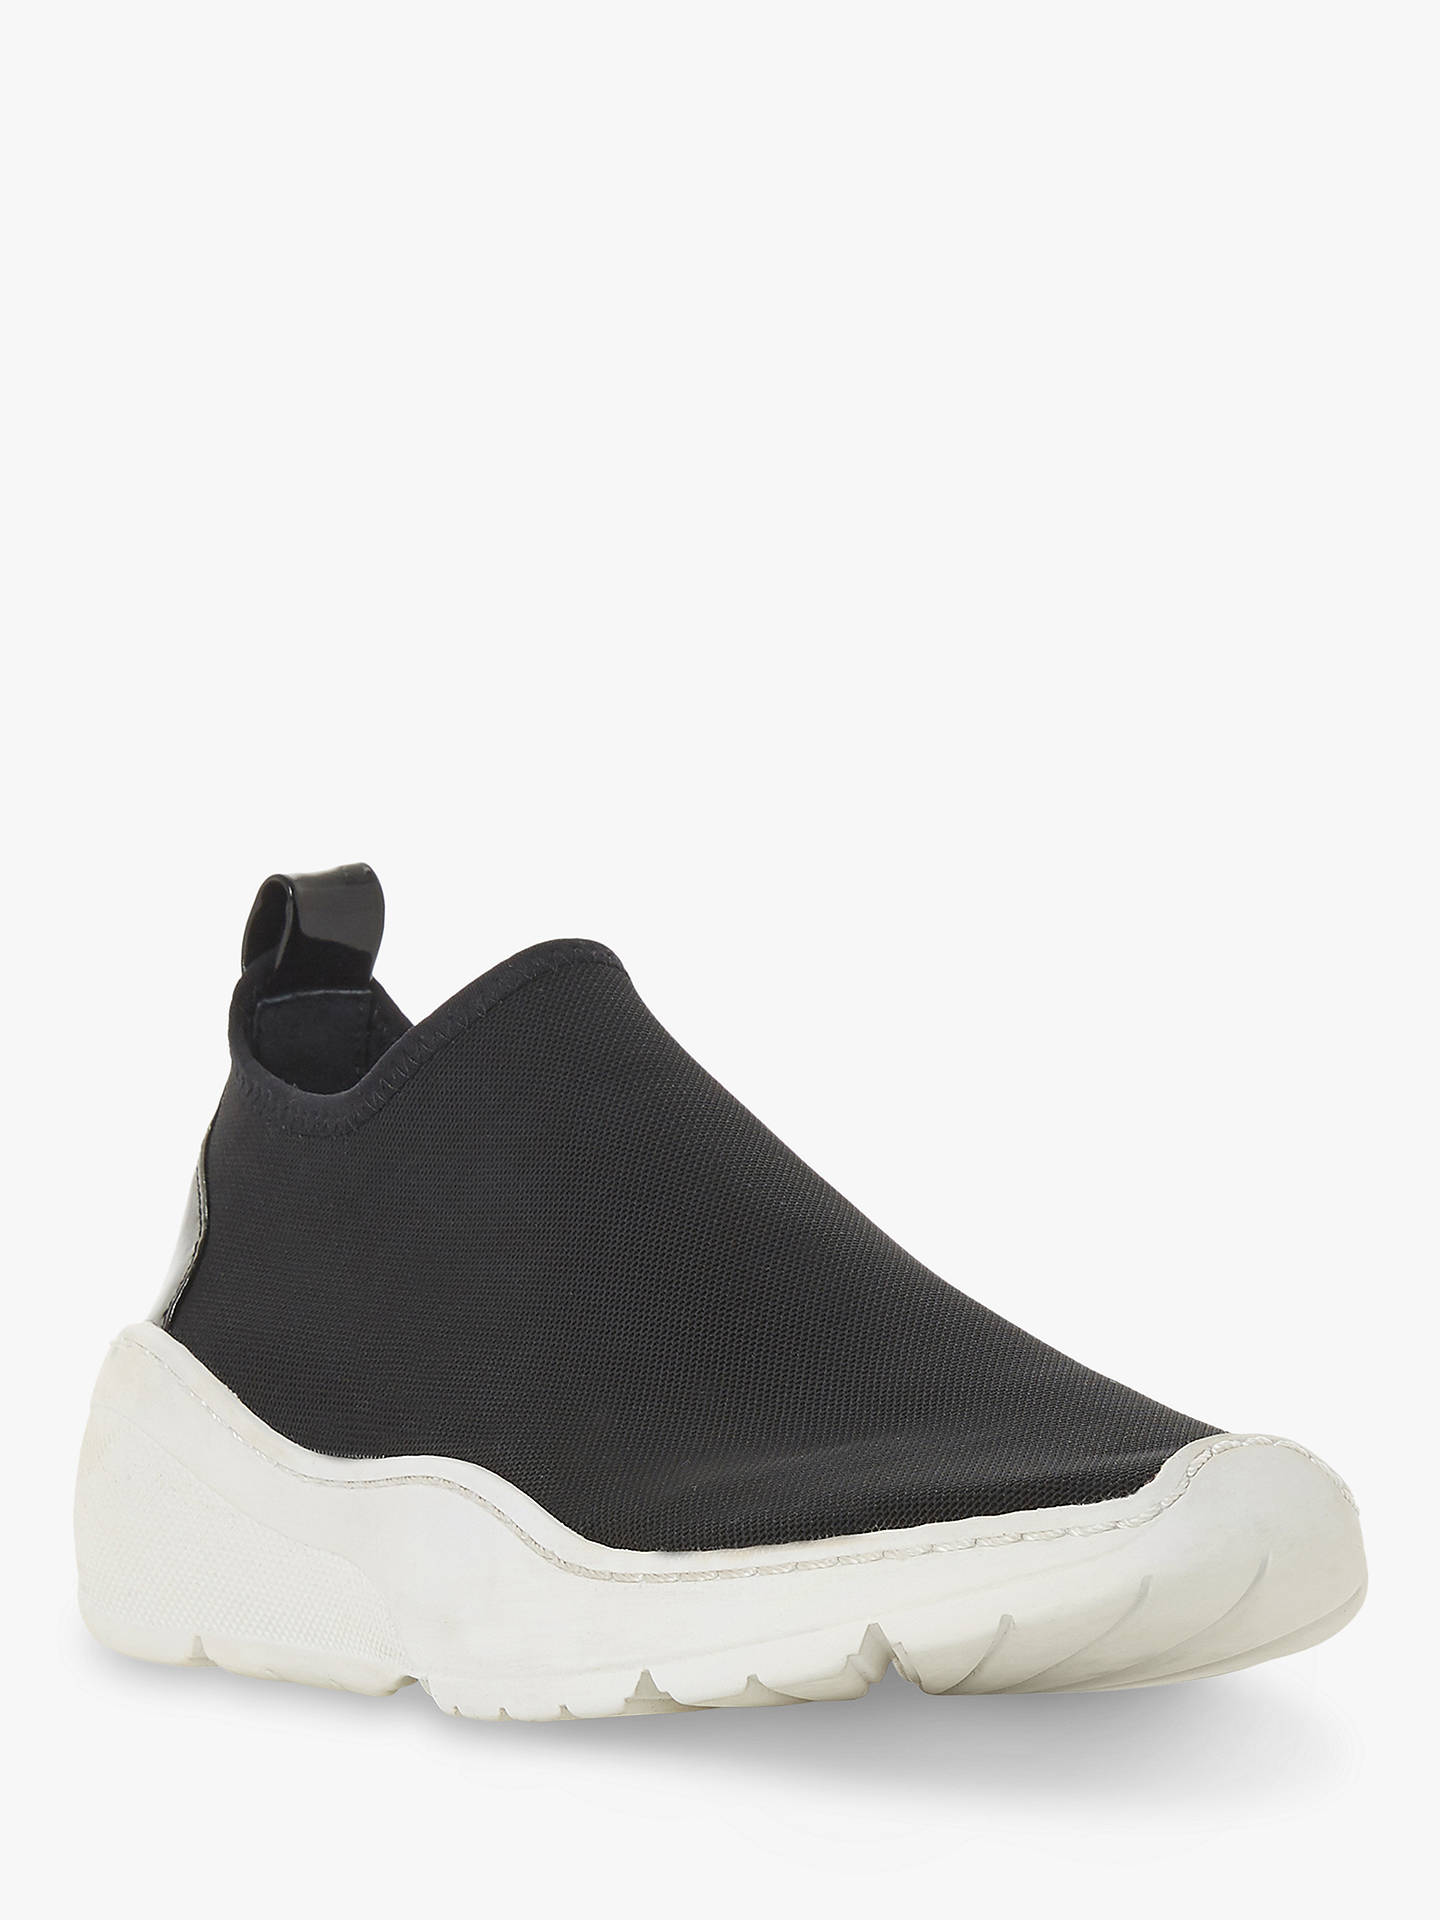 Buy Steve Madden Floren SM Slip-On Trainers, Black, 5 Online at johnlewis.com